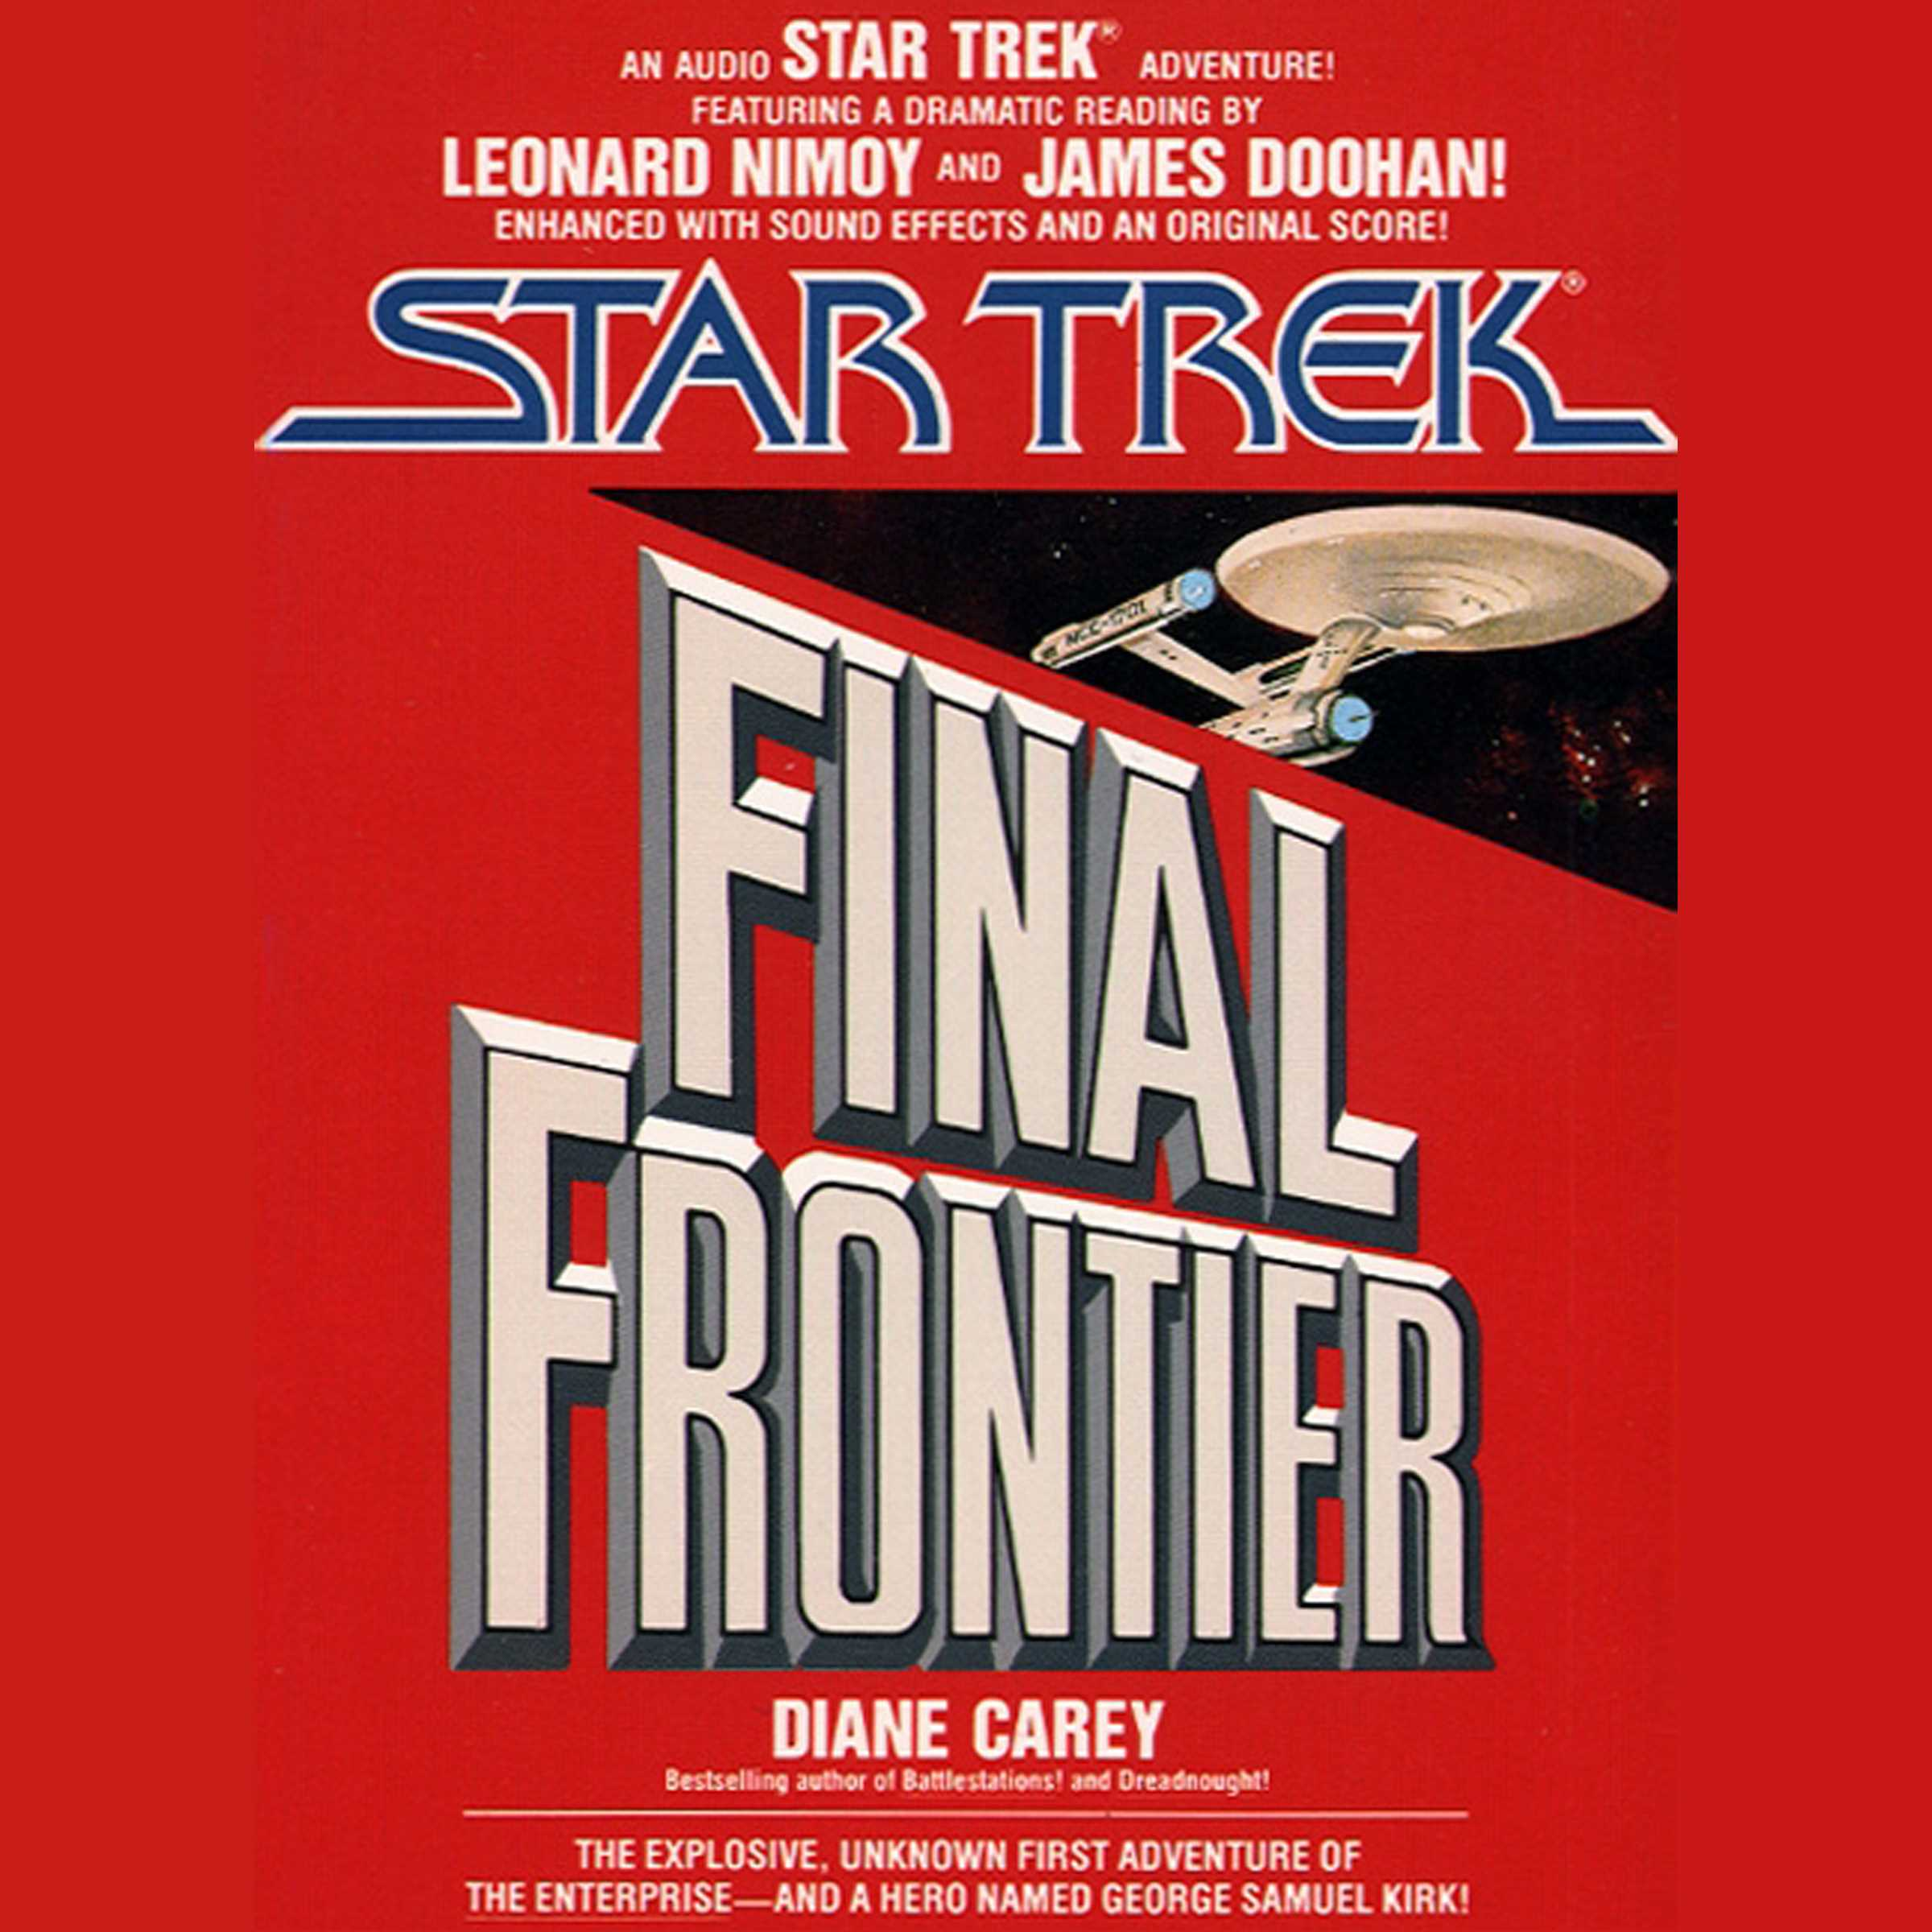 Star trek final frontier 9780743545389 hr